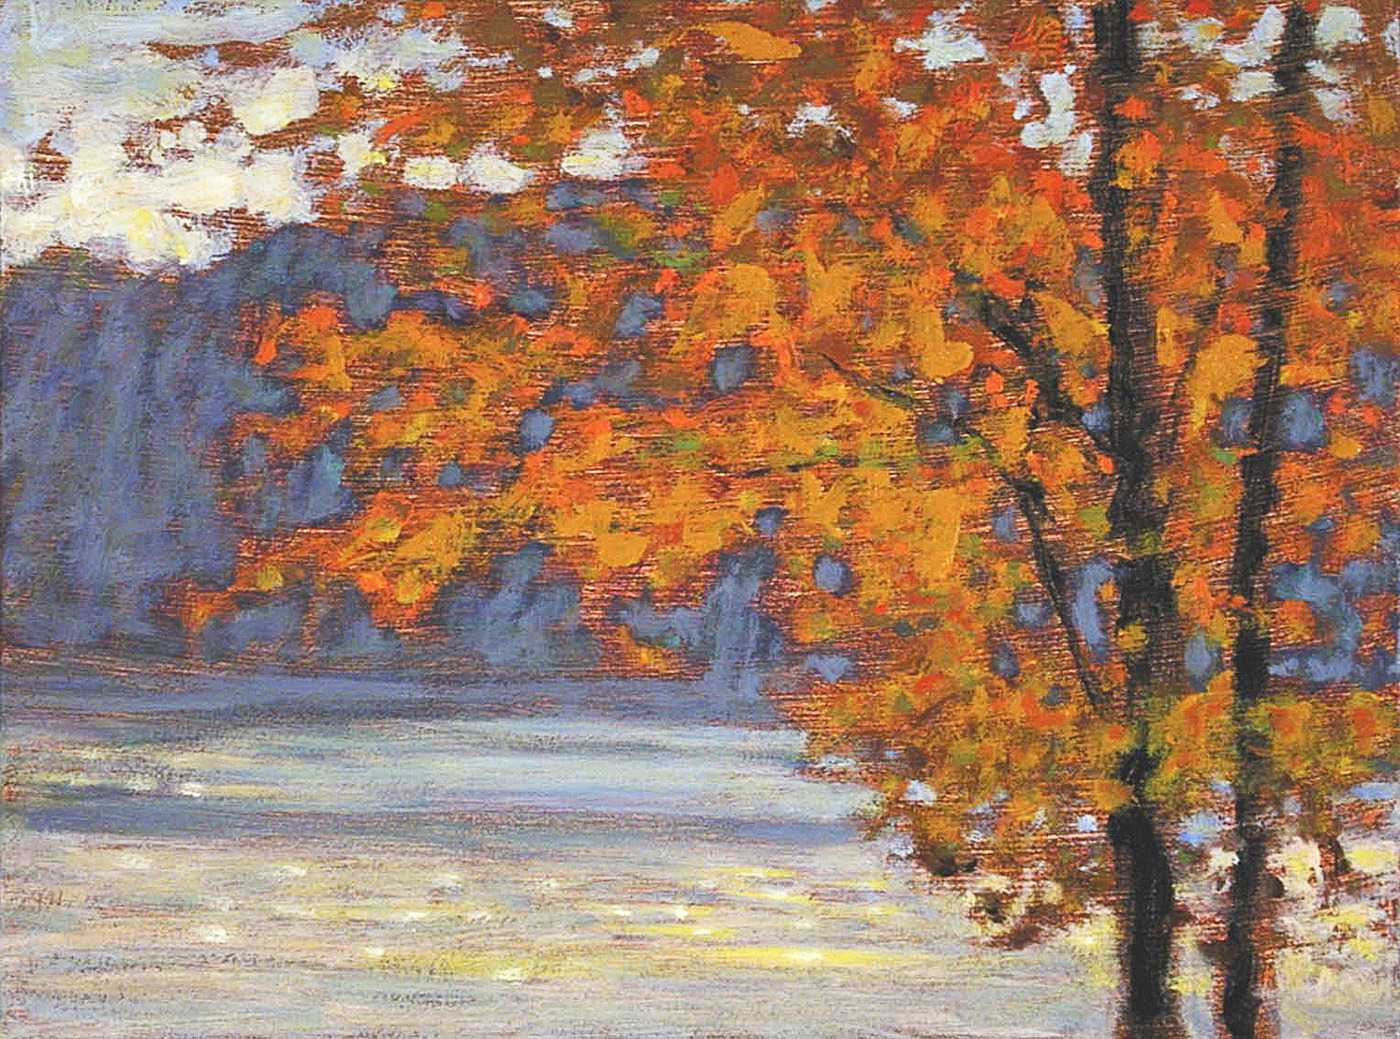 Orange On Blue   | oil on canvas | 9 x 12"